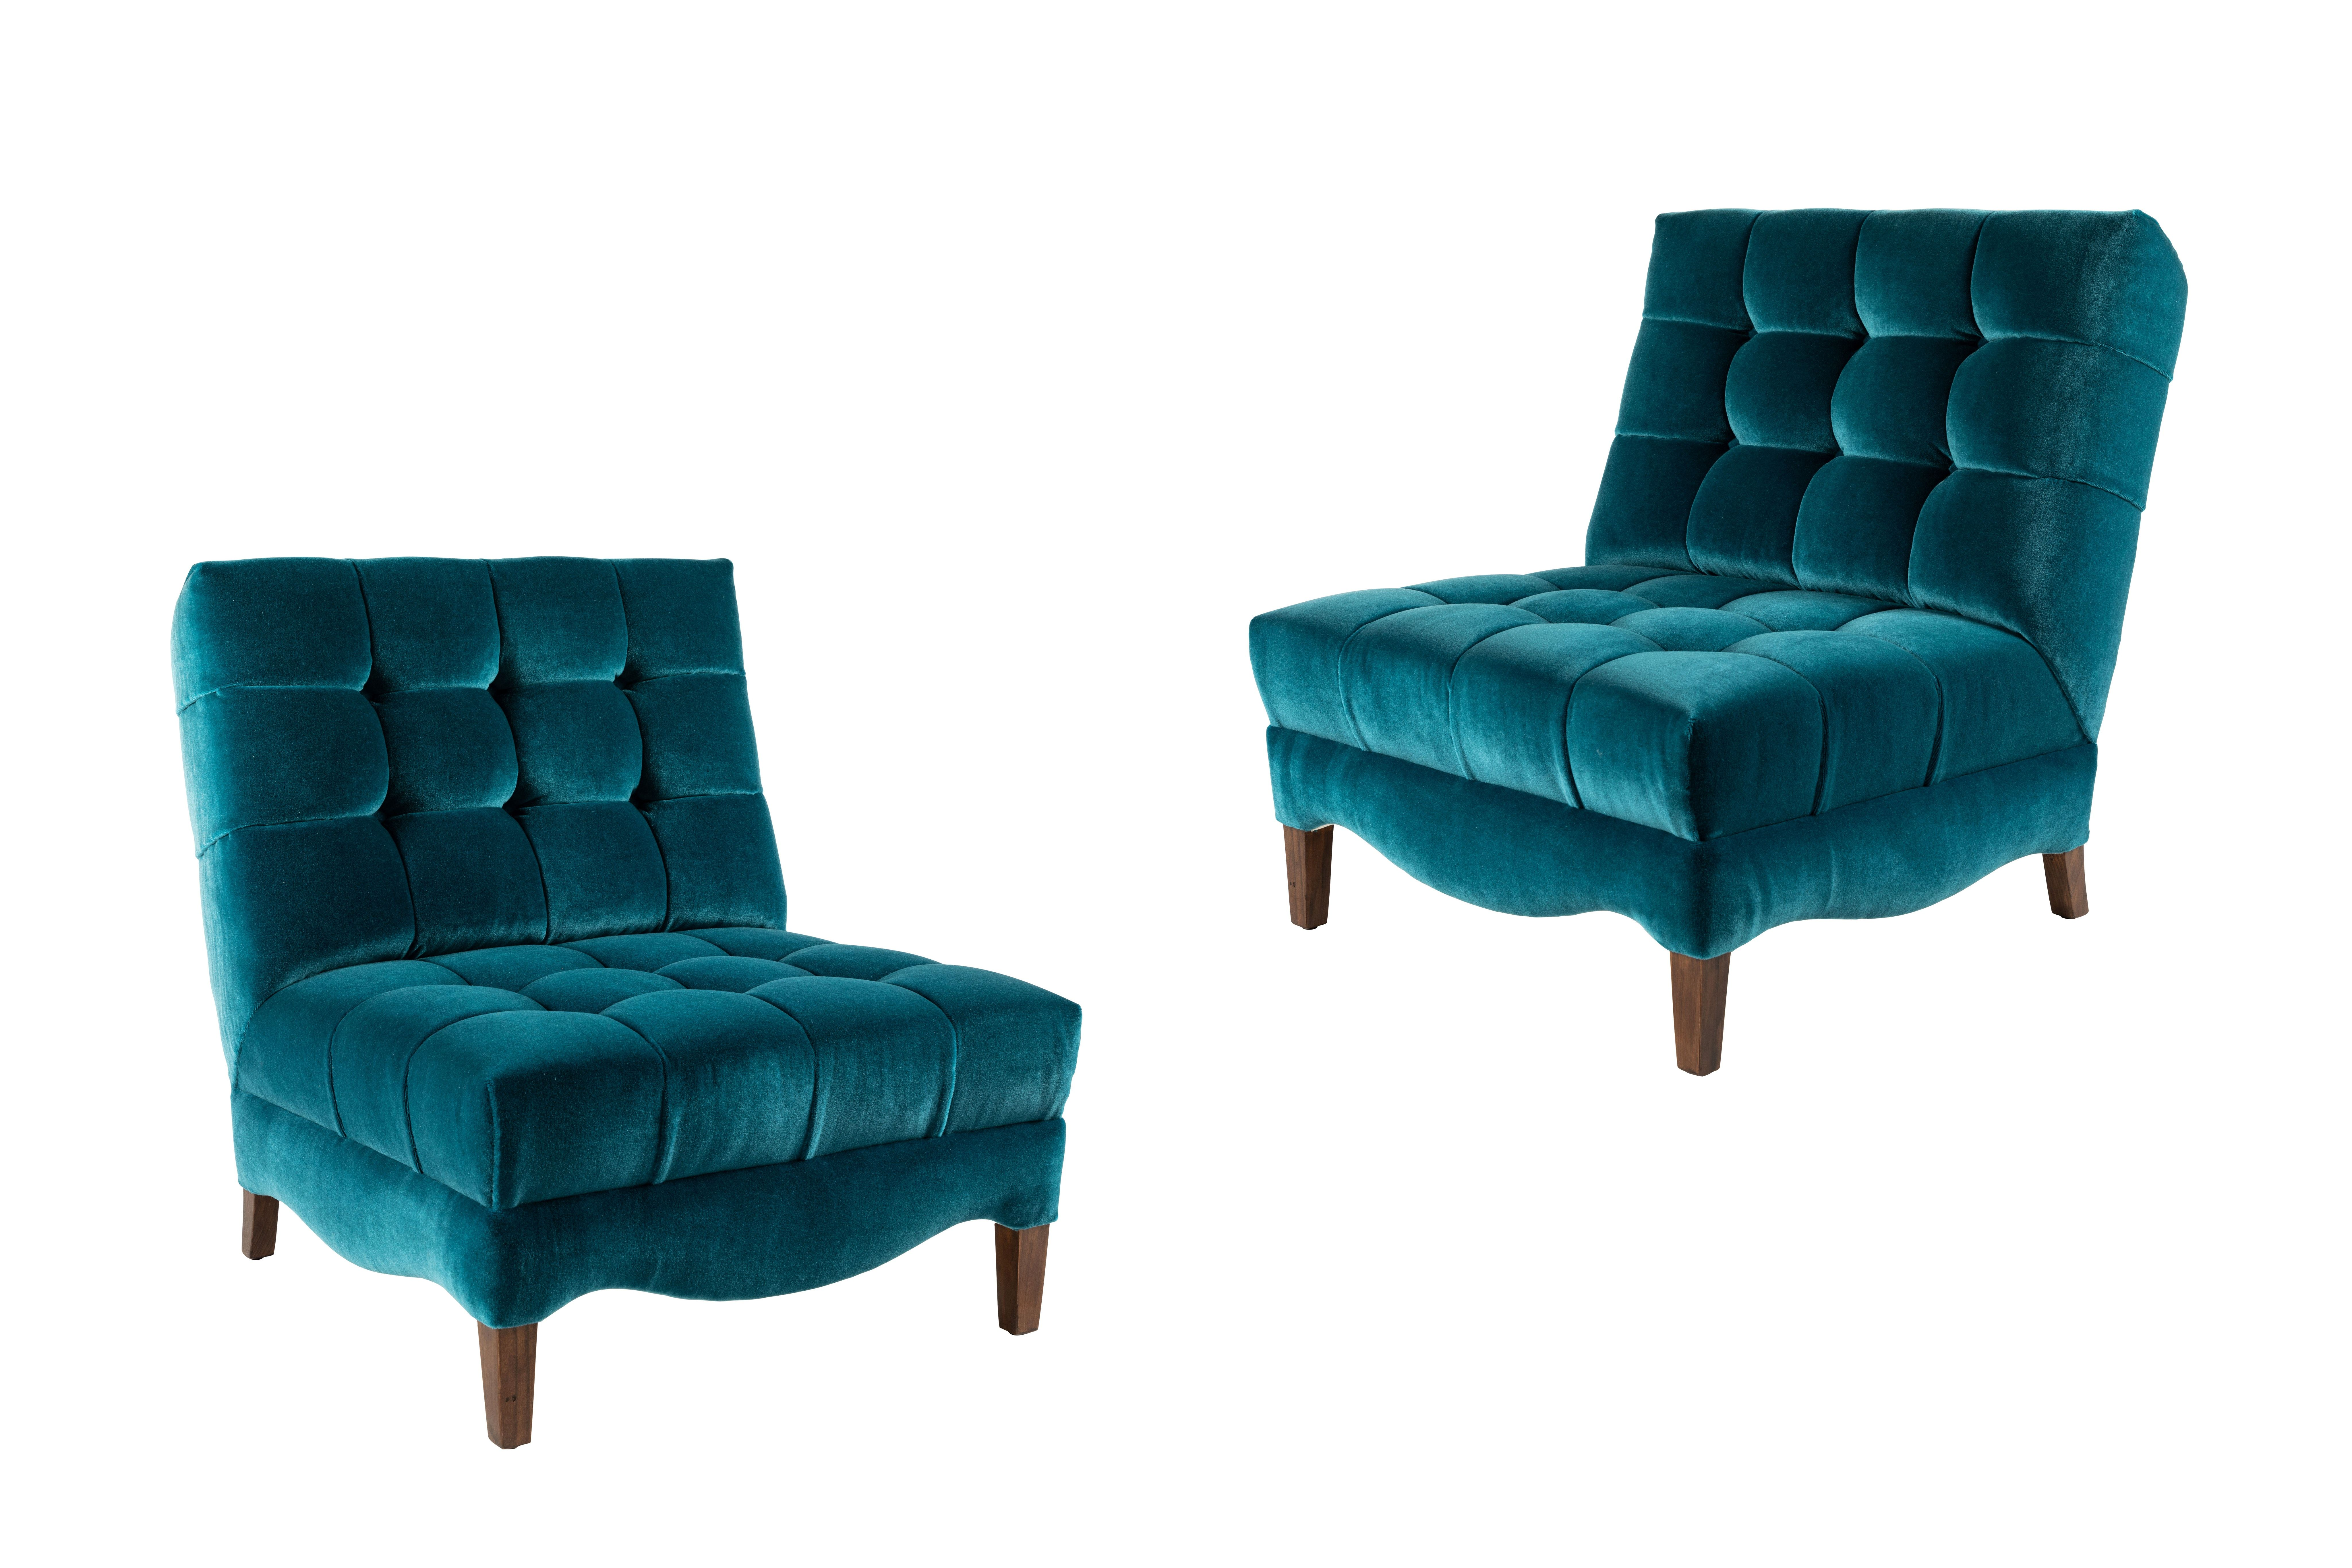 Pair of BiscuitTufted Slipper Chairs Covered in Mohair by